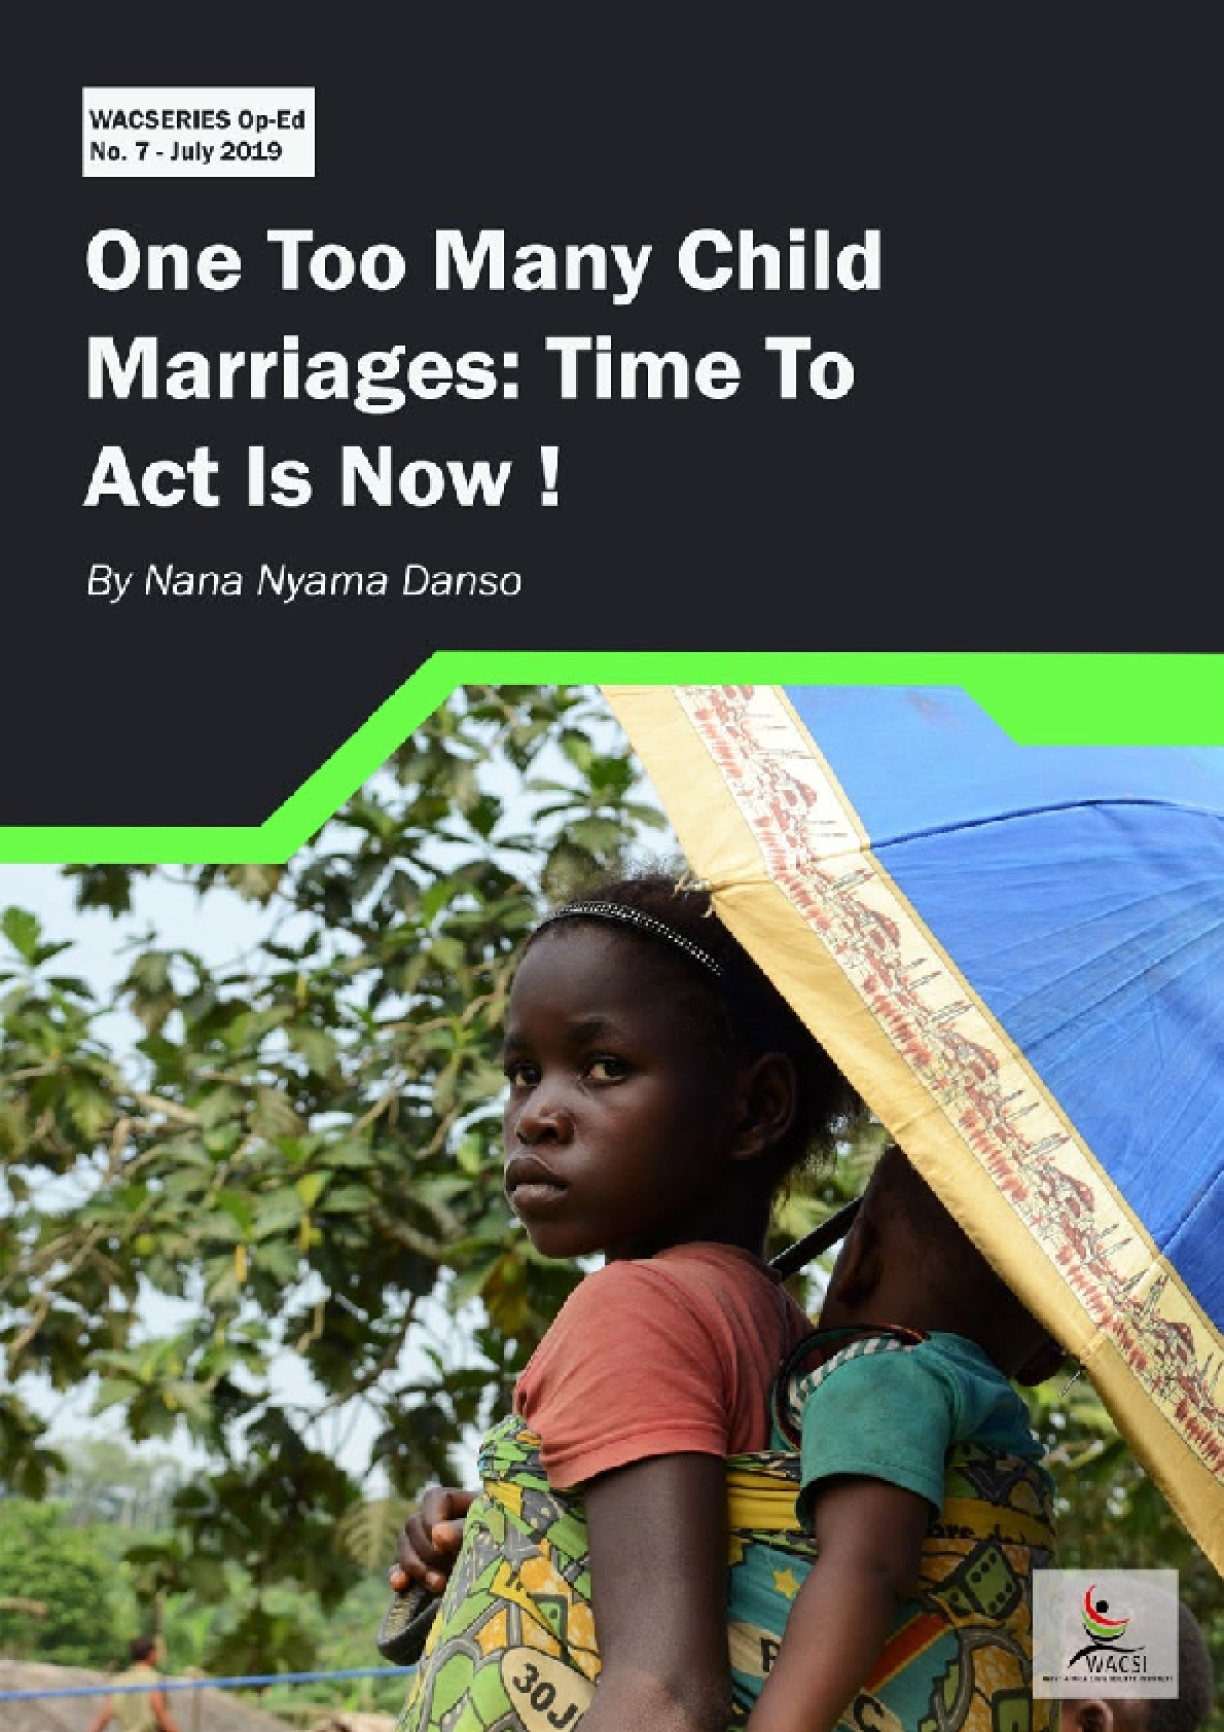 One Too Many Child Marriages: Time To Act Is Now!